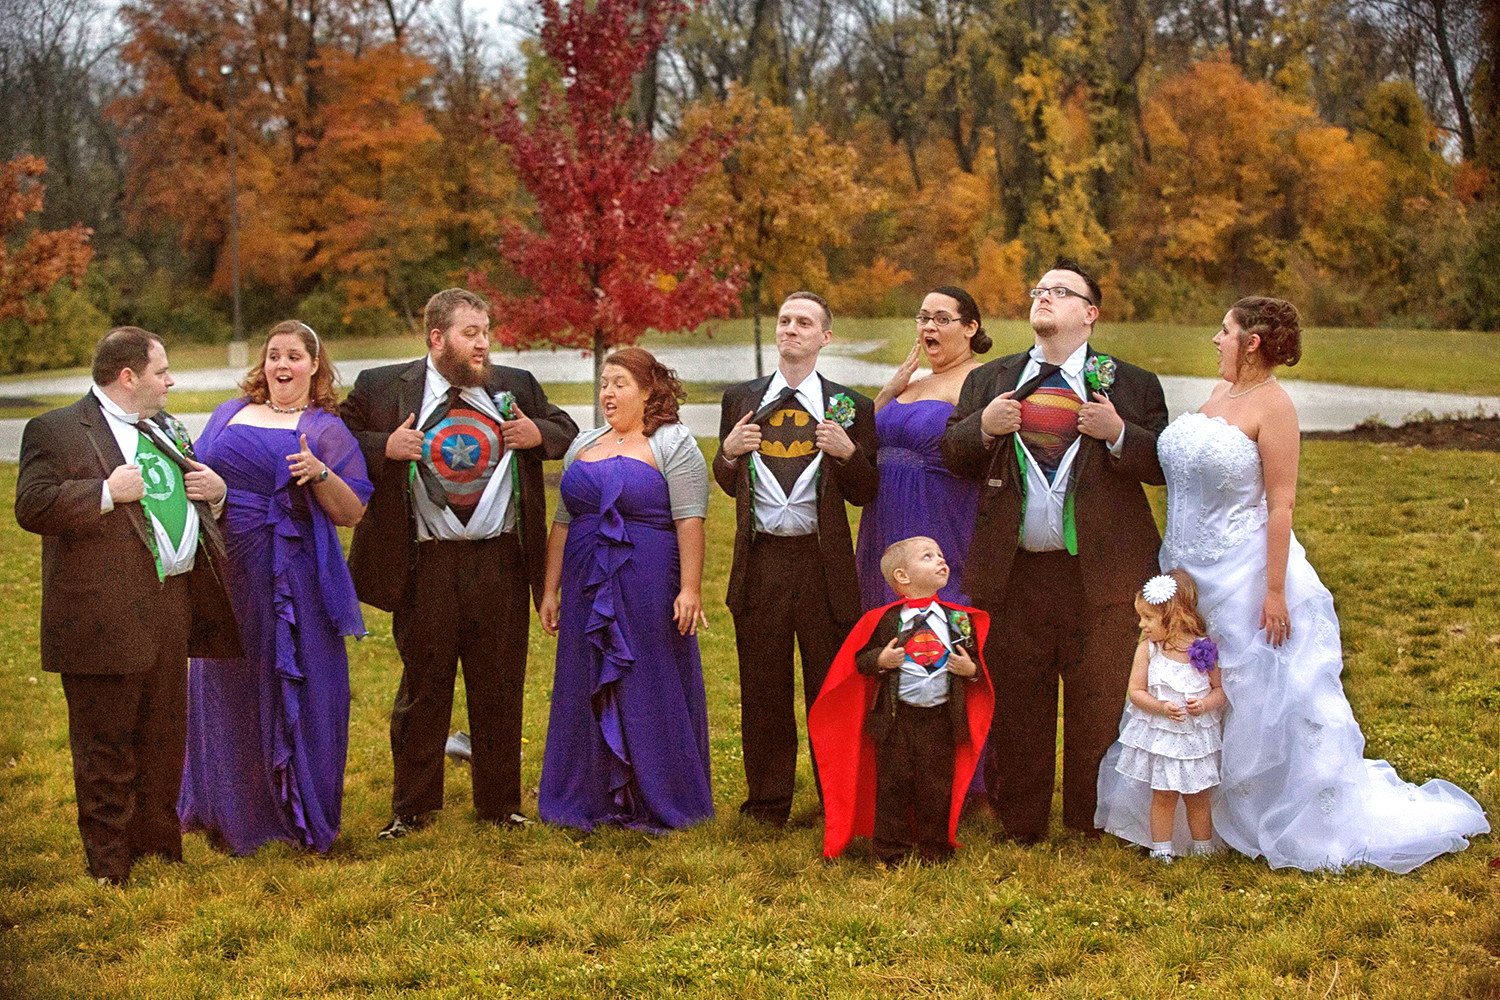 Man Surprises Wife With Dream Geek Wedding For 10th Anniversary